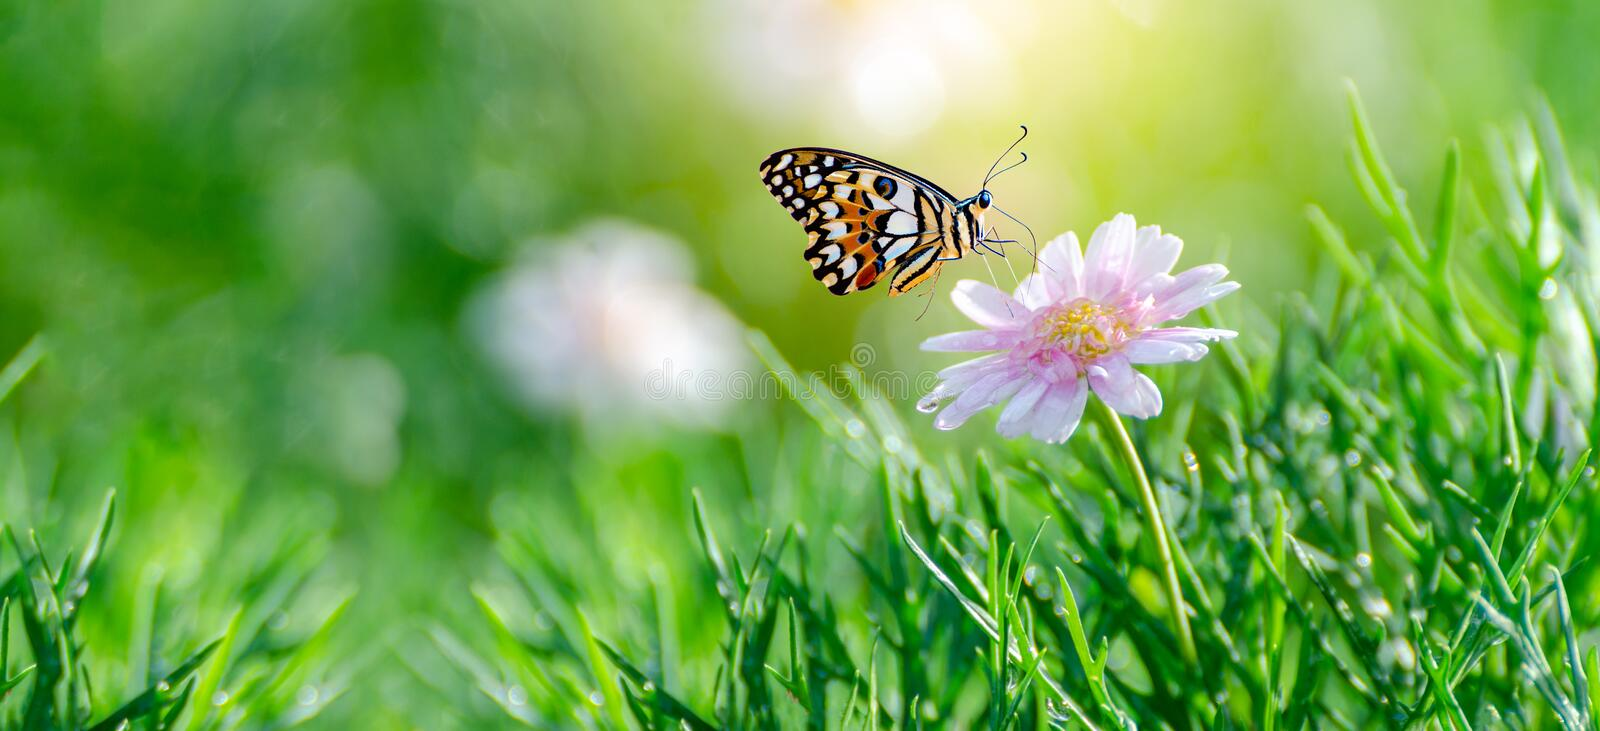 The yellow orange butterfly is on the white pink flowers in the green grass fields stock photography